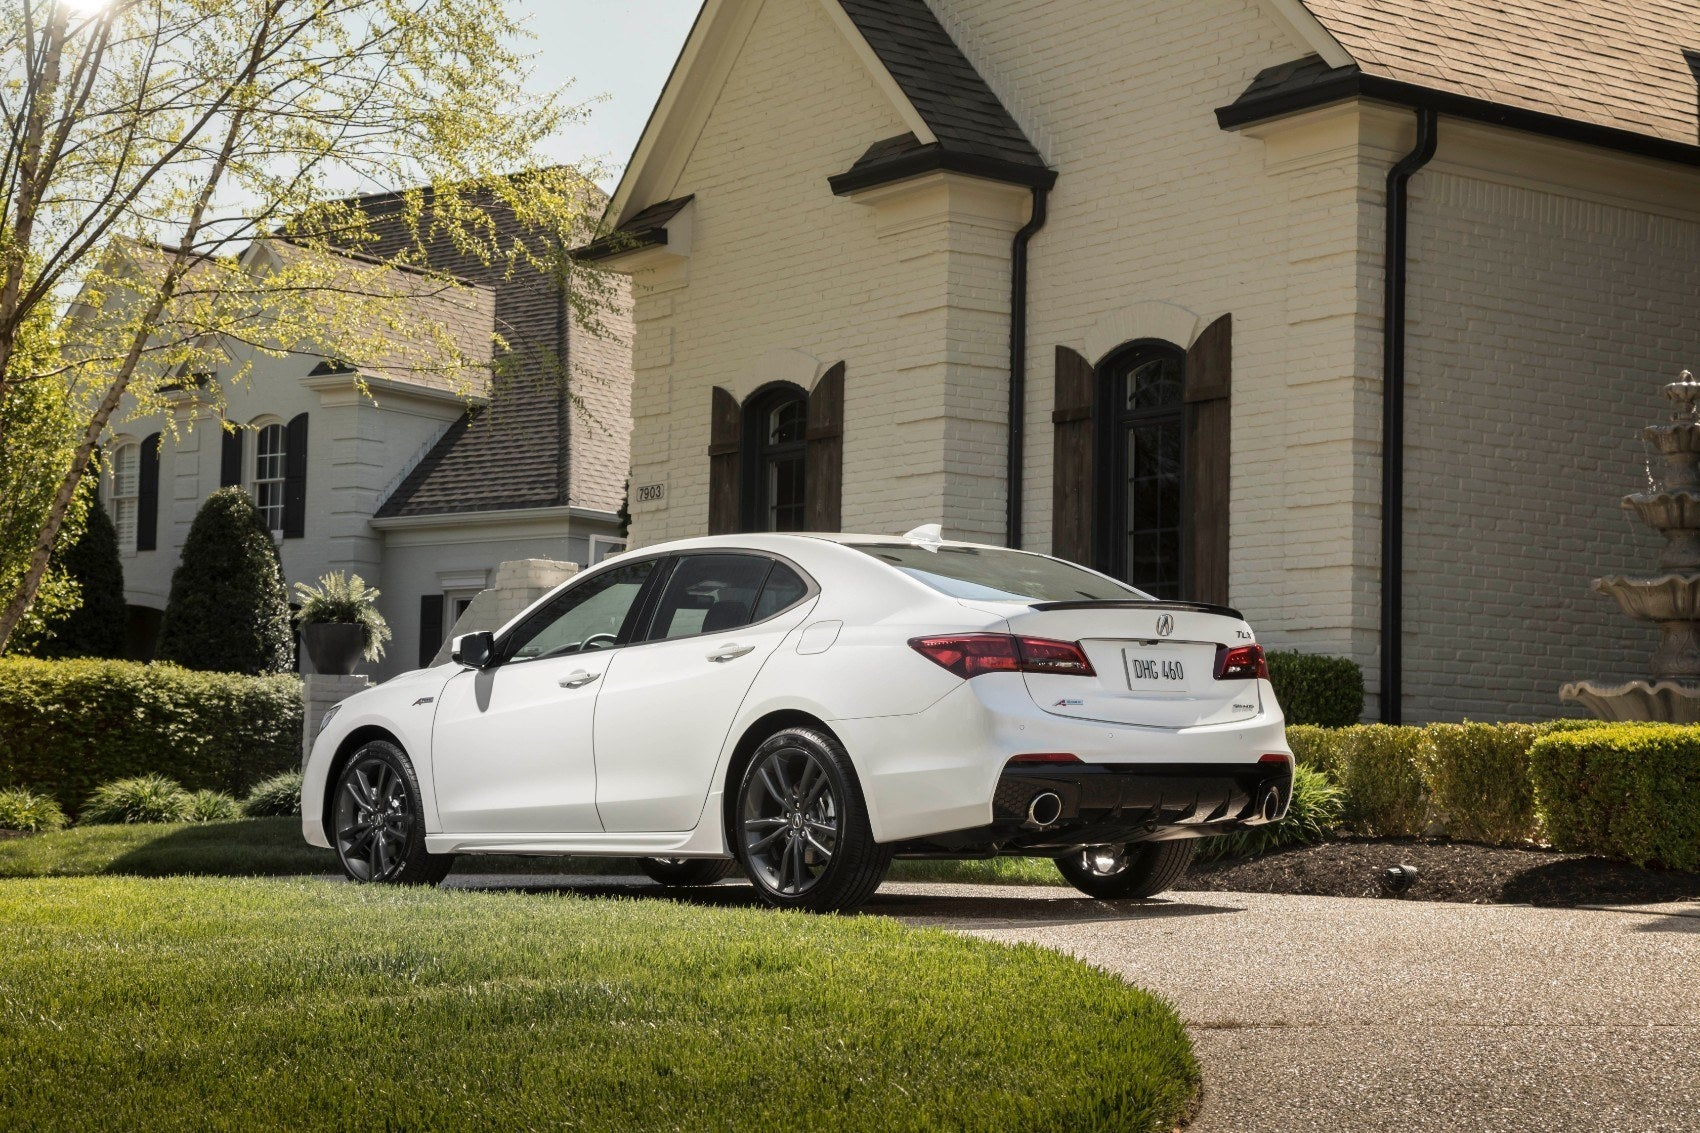 2020 Acura Tlx Review.2020 Acura Tlx Letting Those Colors Fly